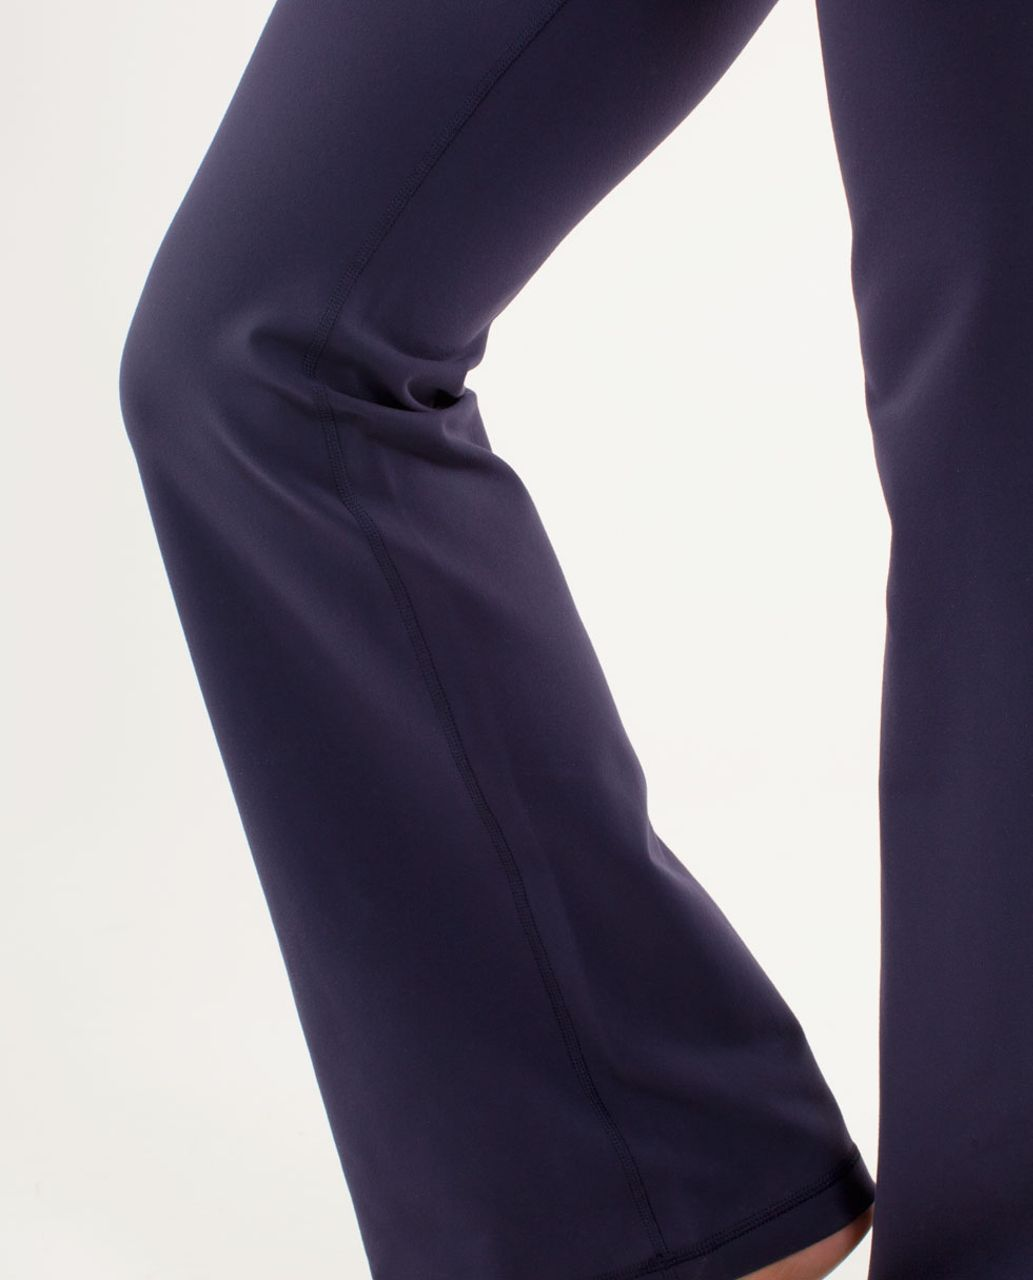 Lululemon Groove Pant (Regular) - Deep Indigo / Mirage Deep Indigo / White